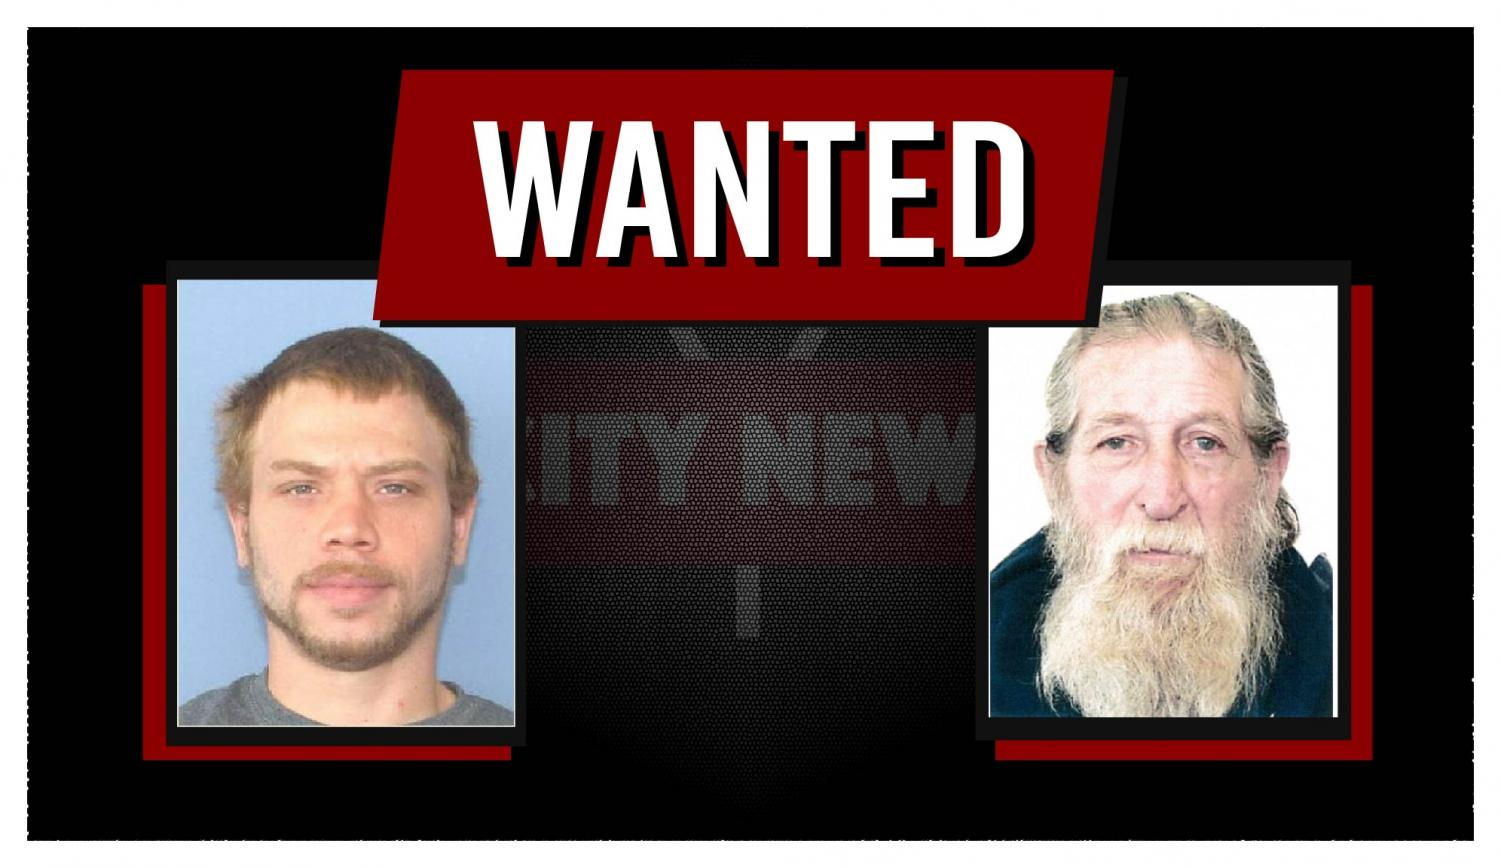 John Newman III (left), Morgan Davis (right) and Marcus Schultz (not pictured) have all been added to the Muskingum County Most Wanted List as of Wednesday afternoon.